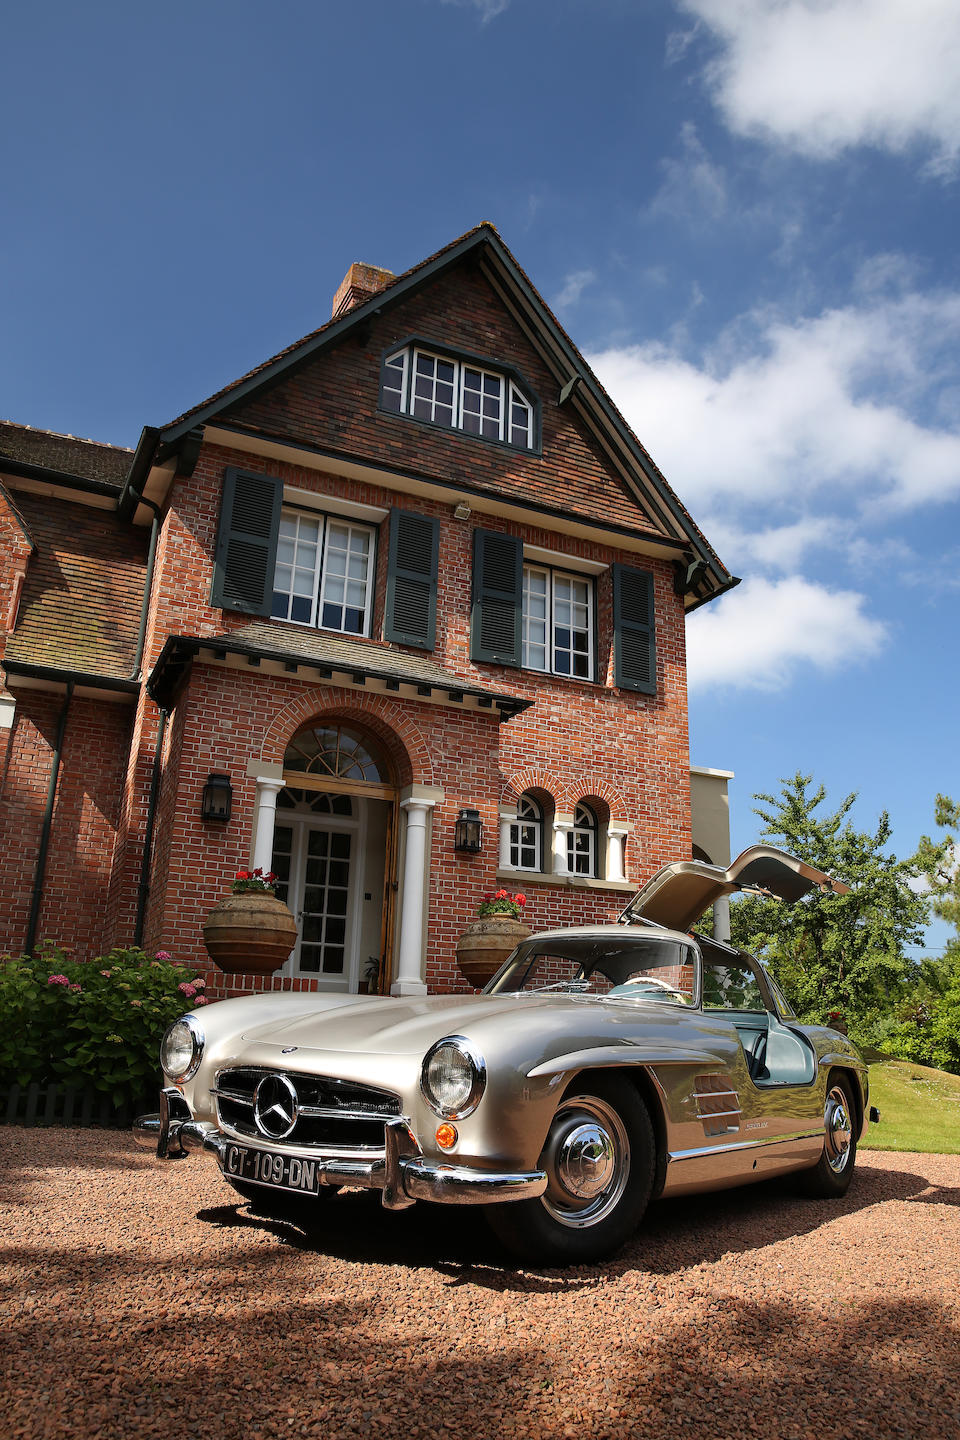 1955  Mercedes-Benz  300 SL 'Gullwing' Coupé  Chassis no. 198.040-55-00049 Engine no. 198.980.4500209